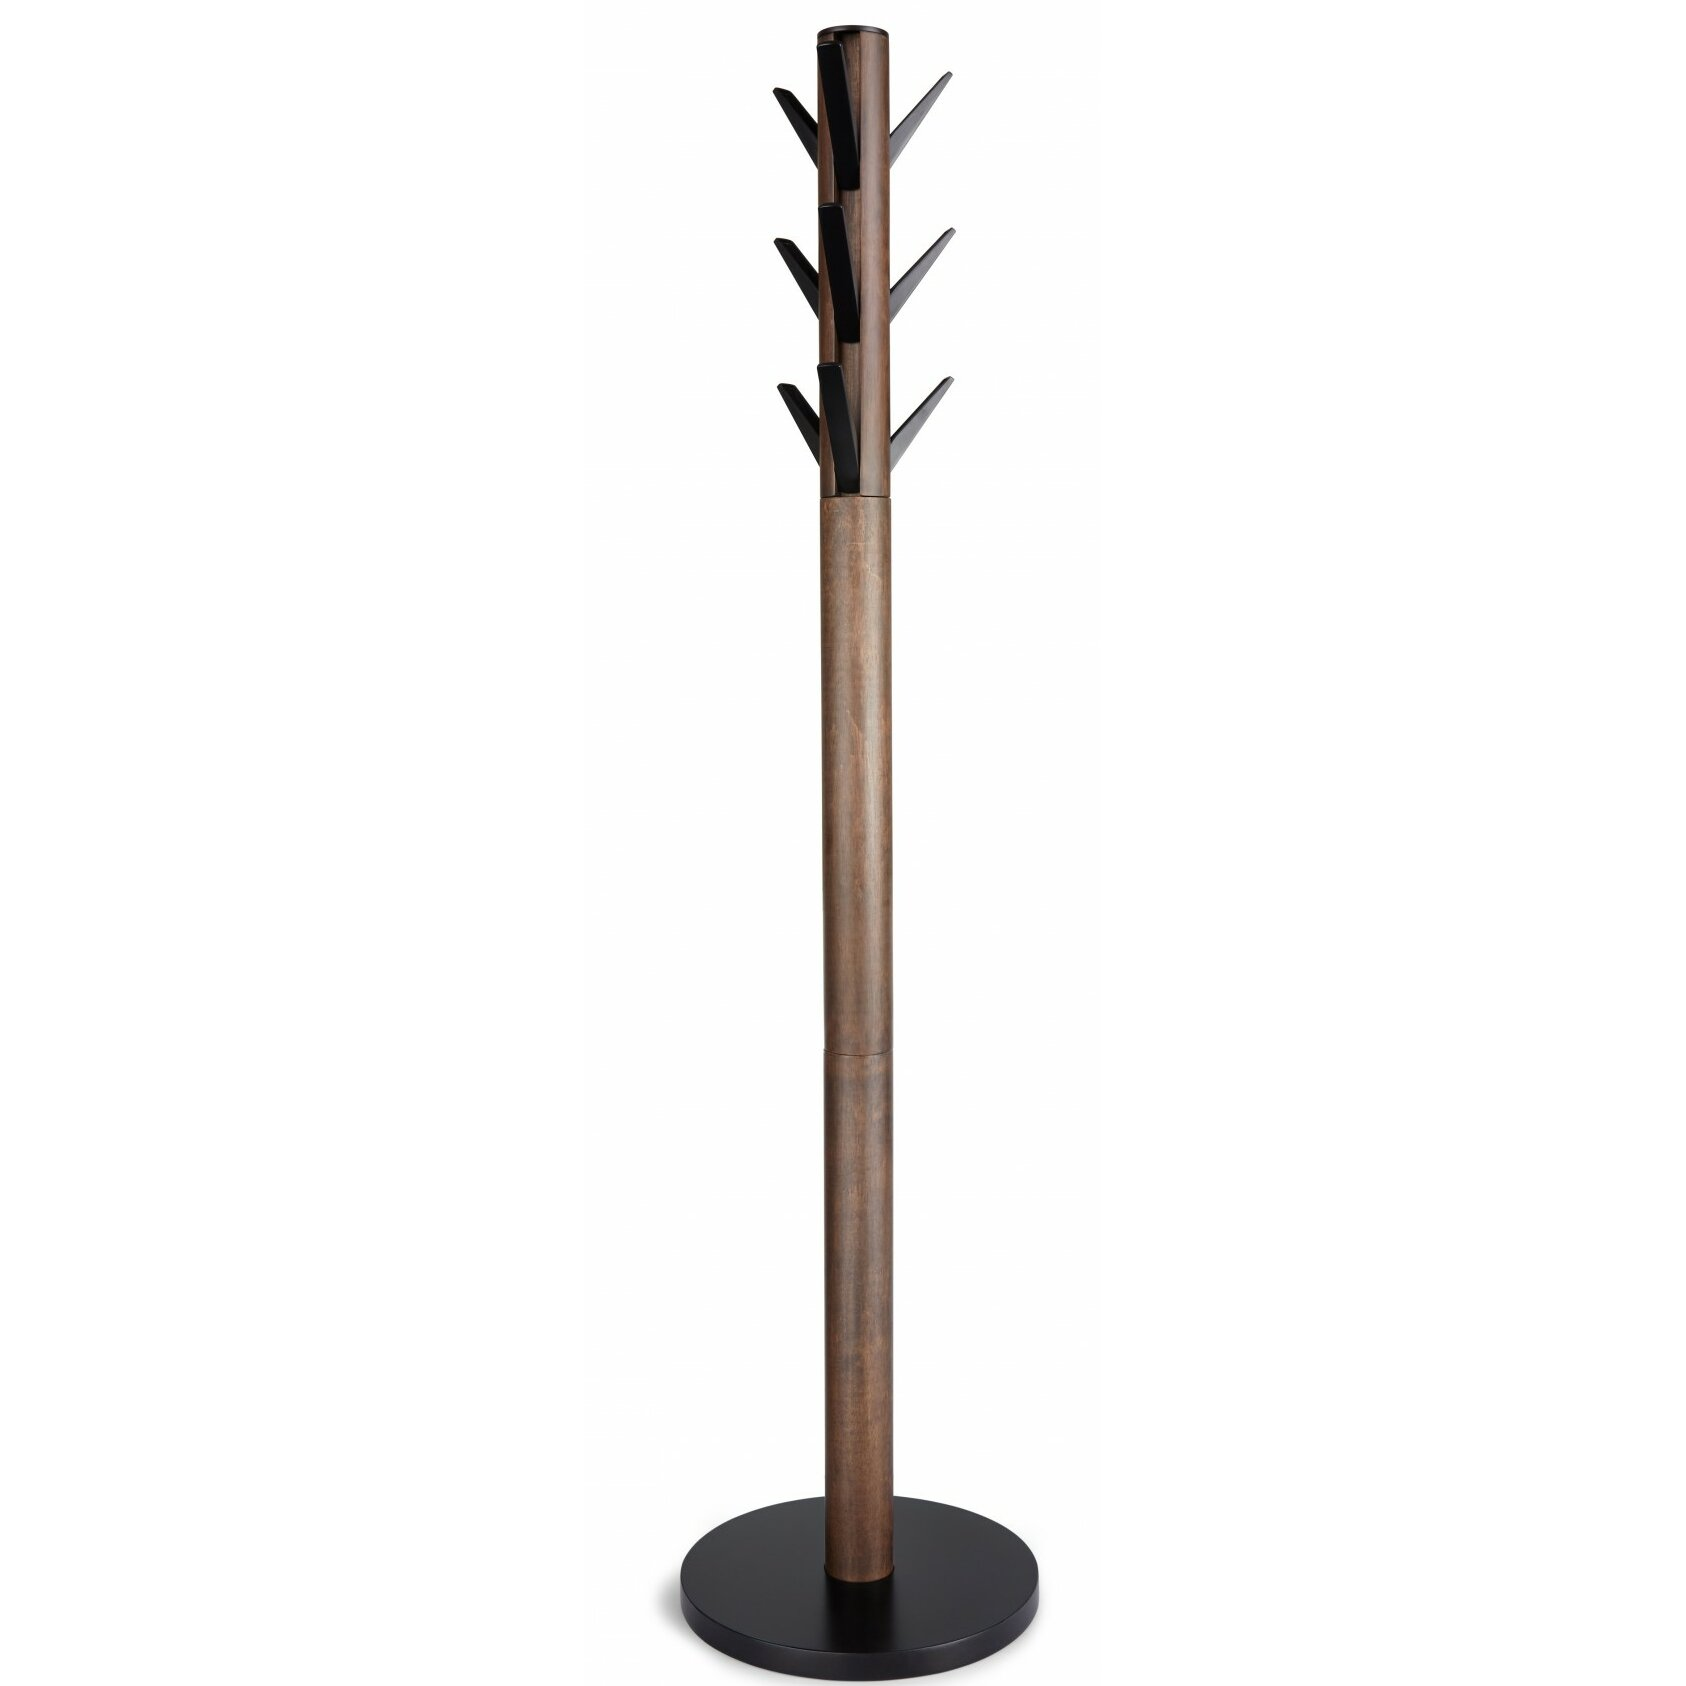 Umbra Flapper Coat Rack Amp Reviews Wayfair Ca